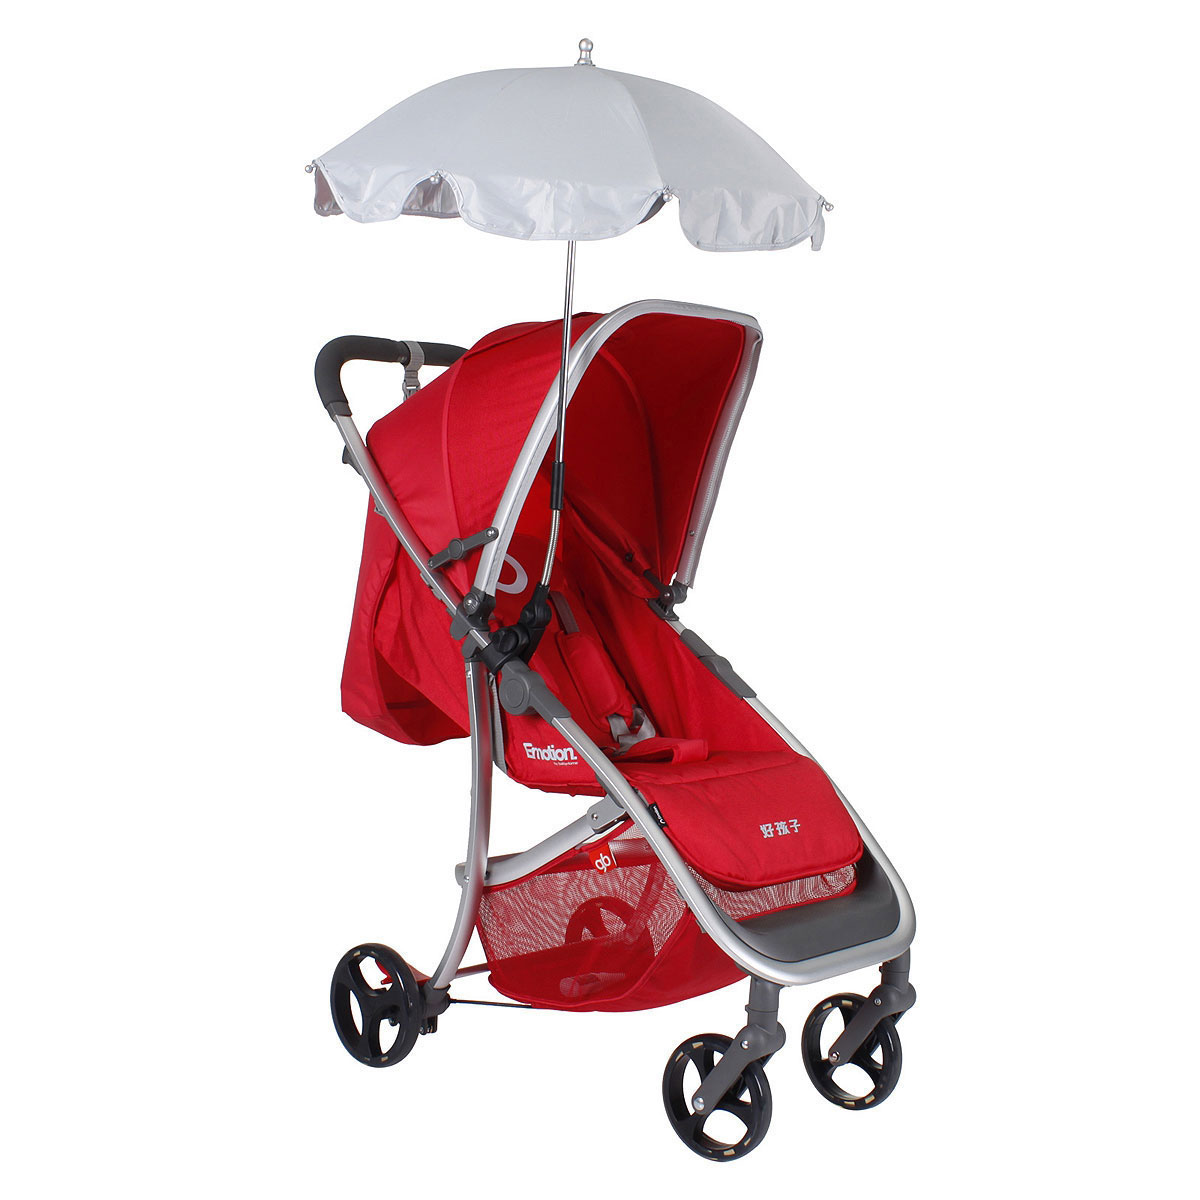 Newborn Umbrella Stroller Buy Boy Baby Stroller Baby Stroller Umbrella Stroller